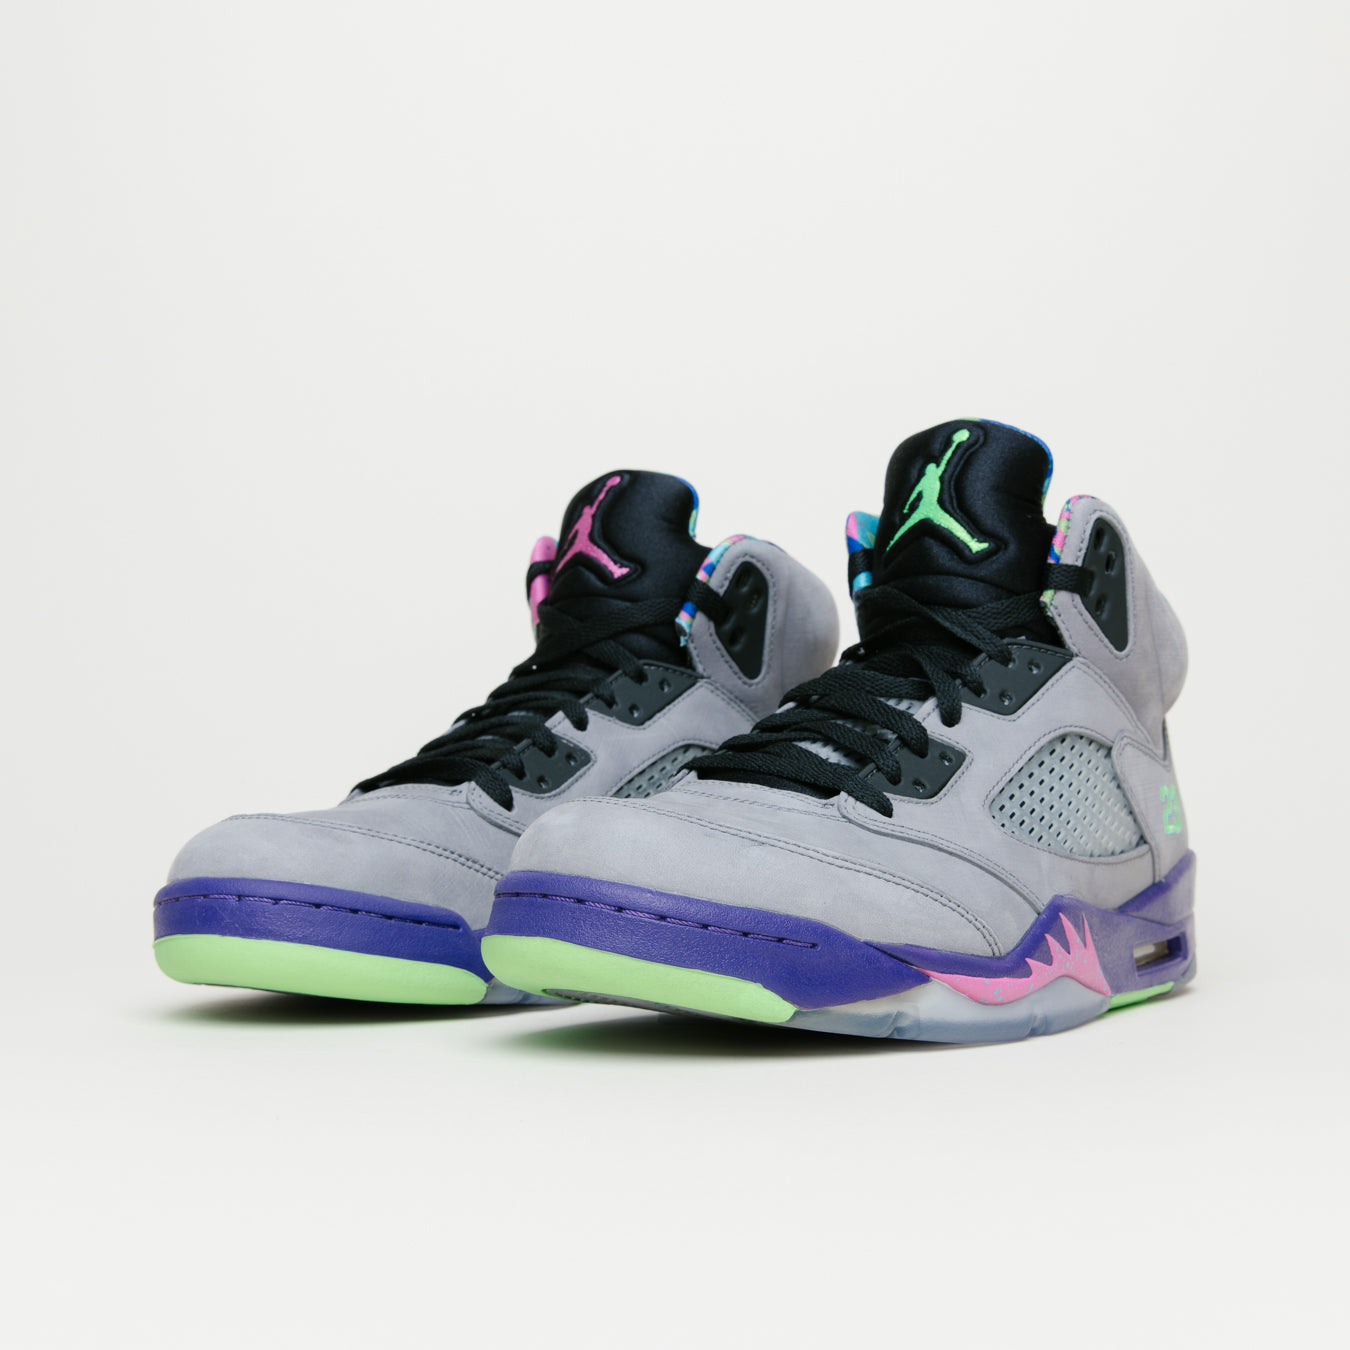 new style 9d629 bcec1 ... hot air jordan retro 5 bel air grey purple green e2222 2bcc8